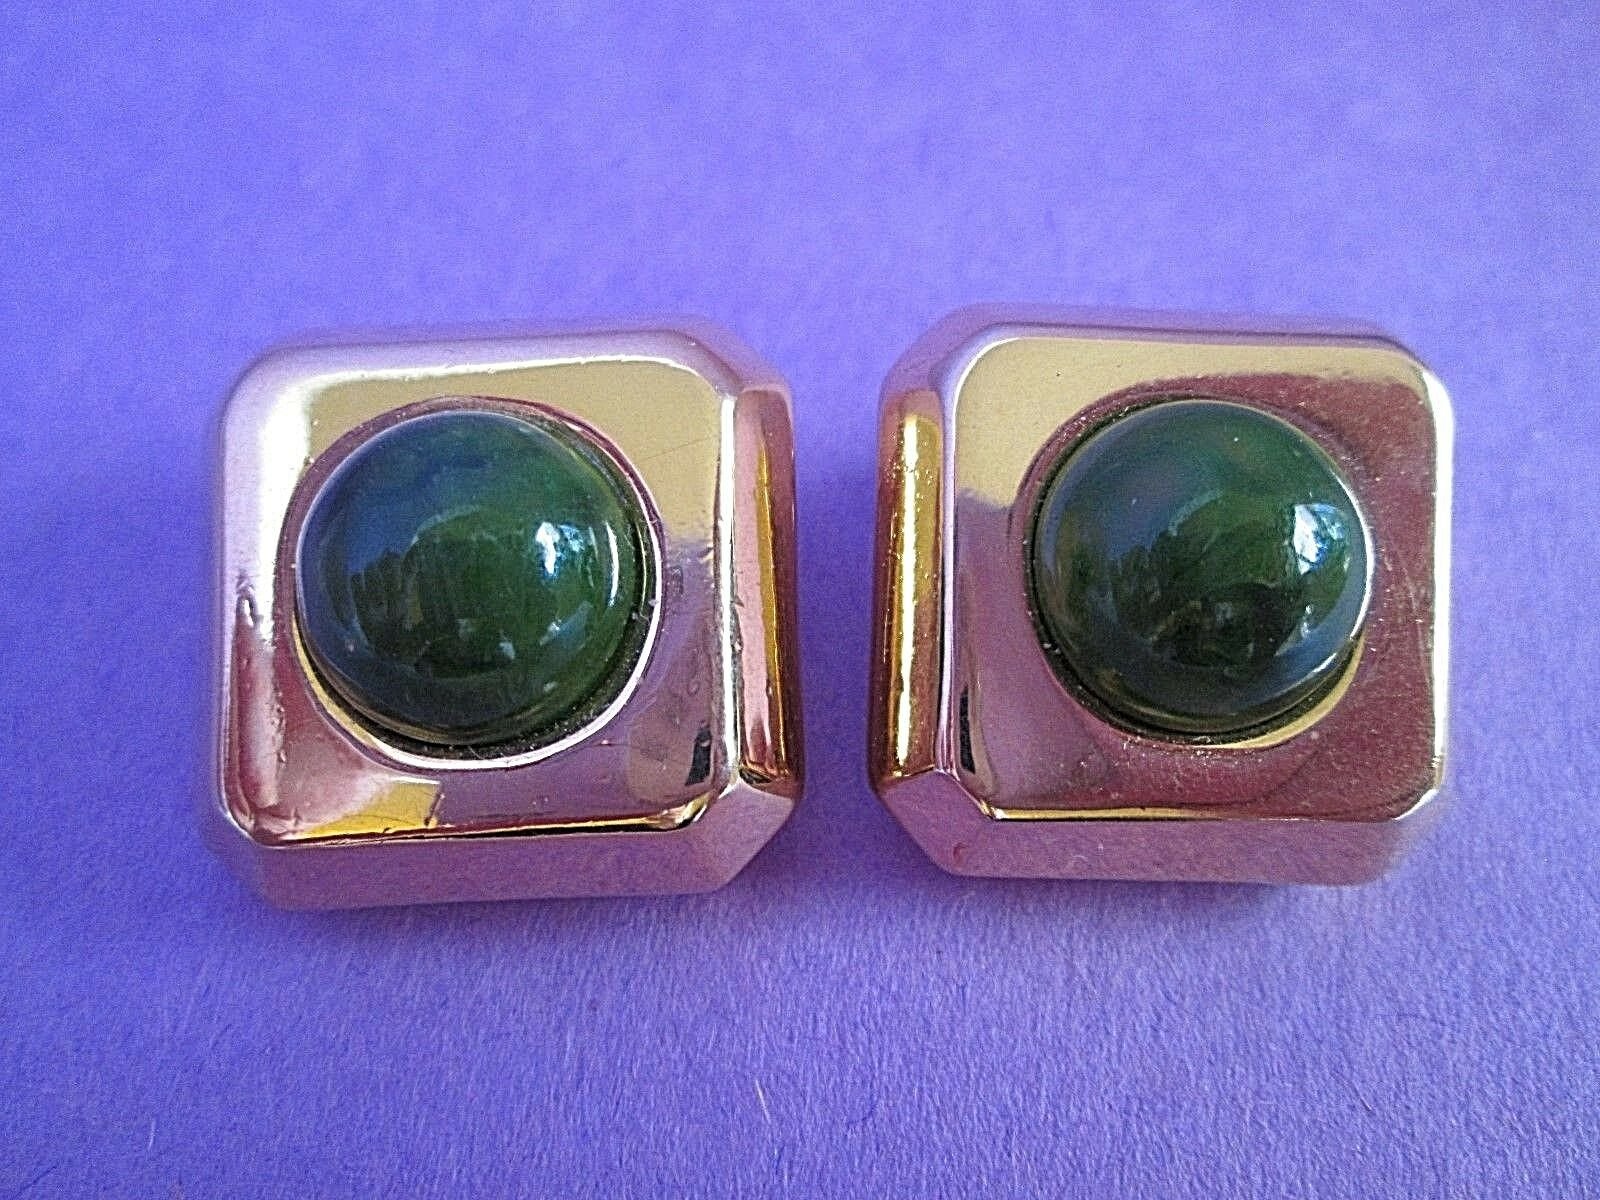 Lanvin Paris gold Tone Clip Earrings Signed Vintage Jade Green Faux Stone RARE